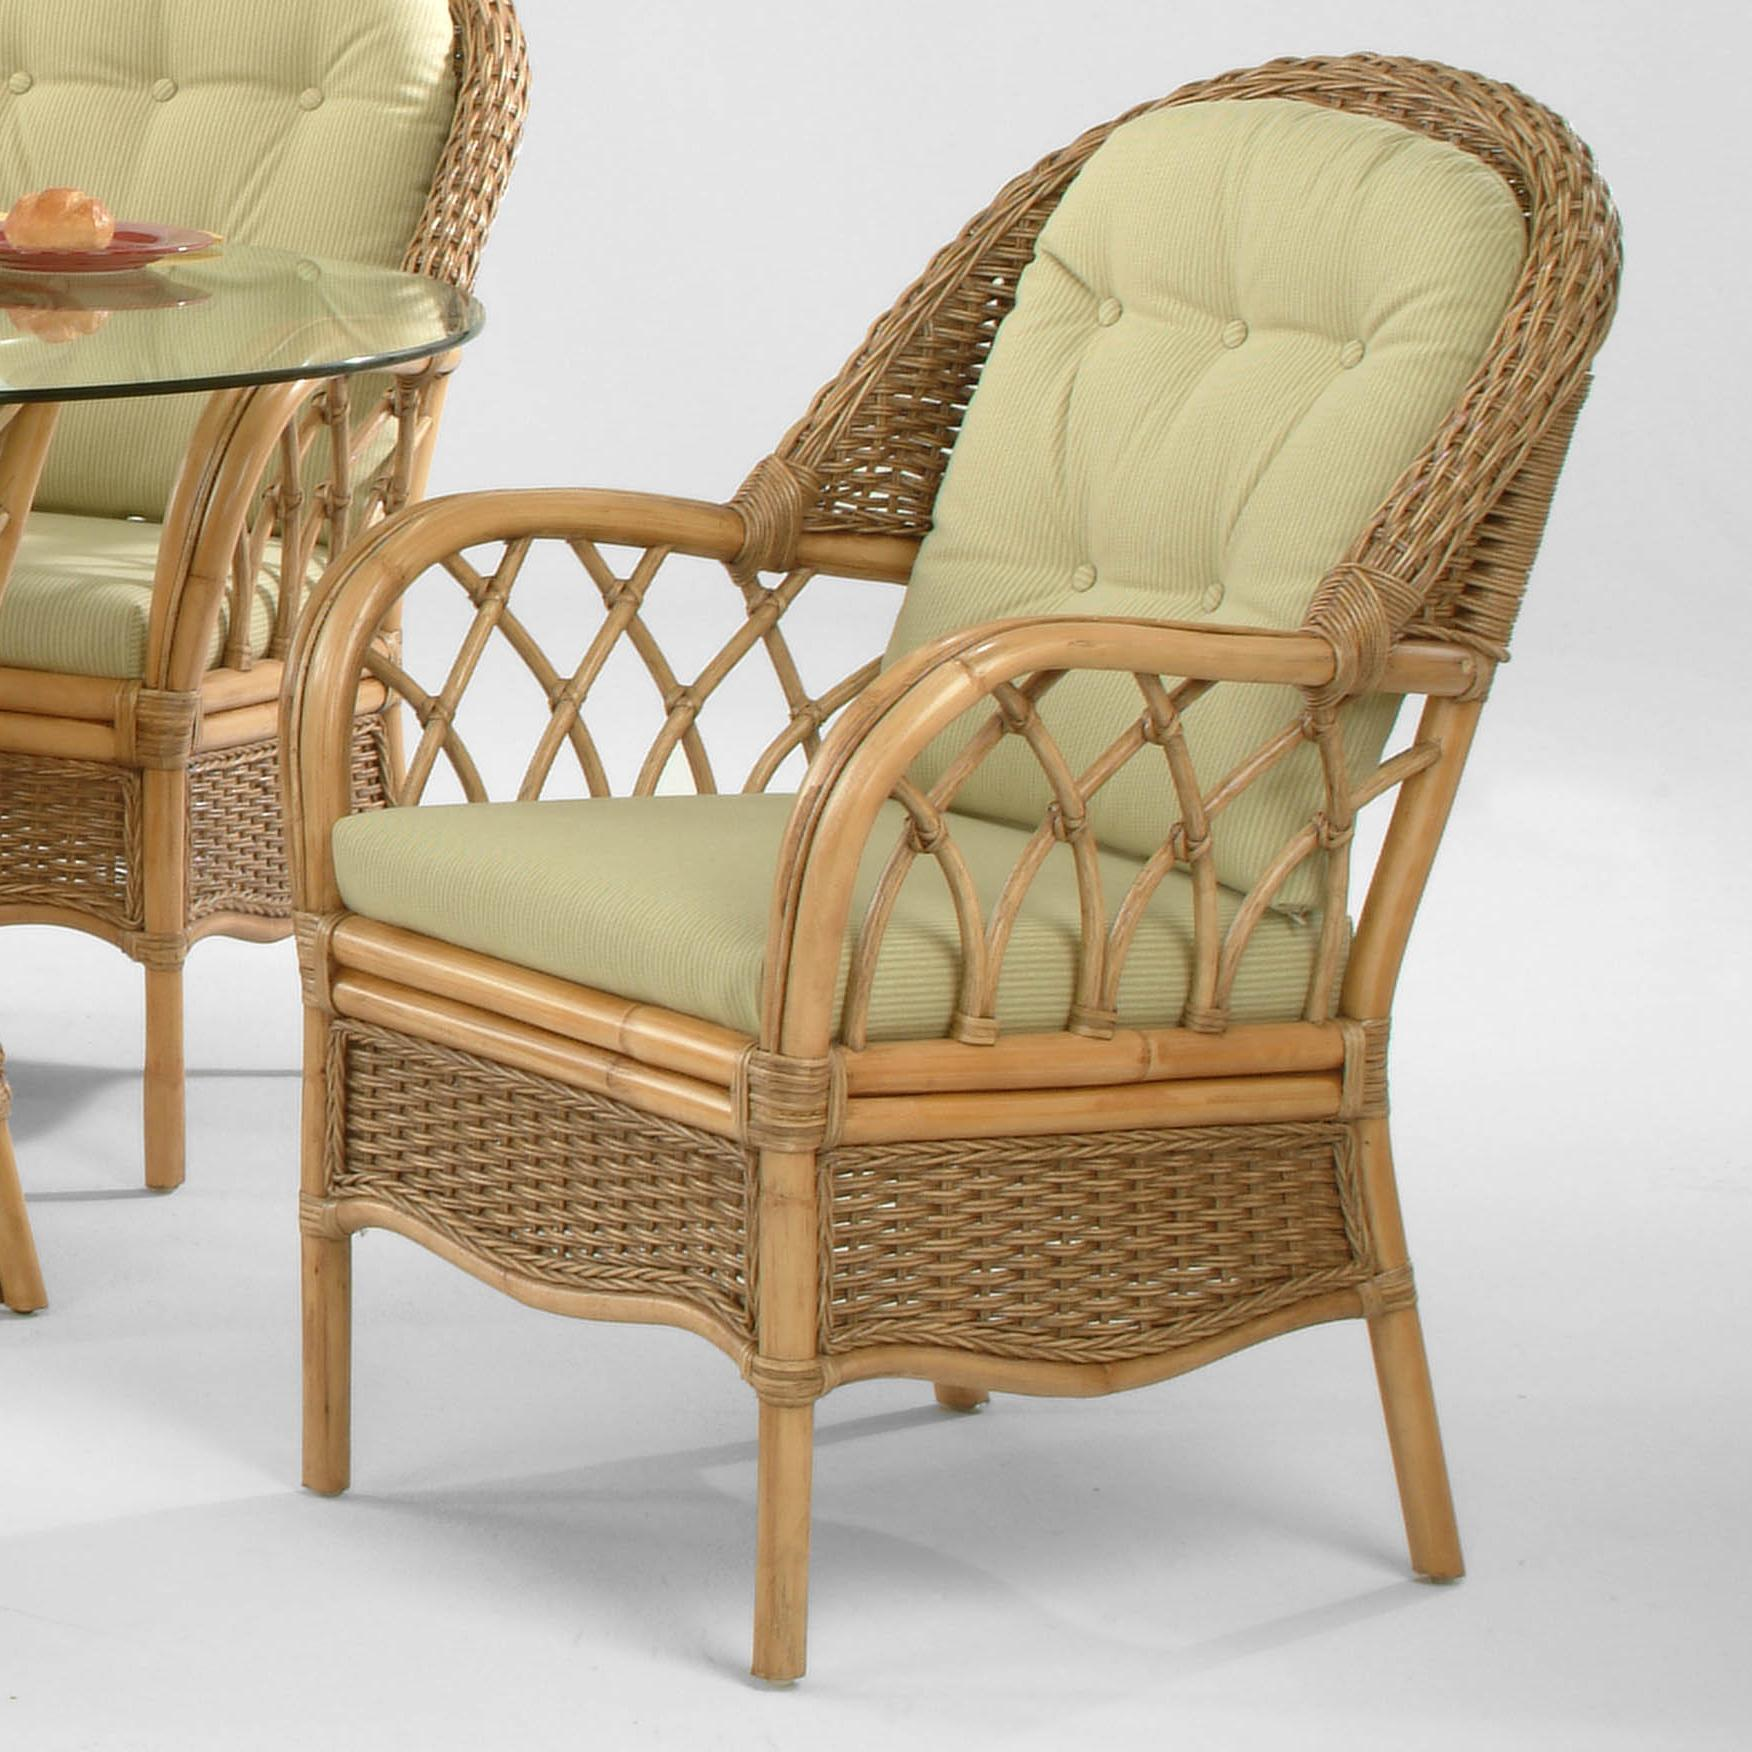 Everglade Dining Arm Chair by Braxton Culler at Esprit Decor Home Furnishings